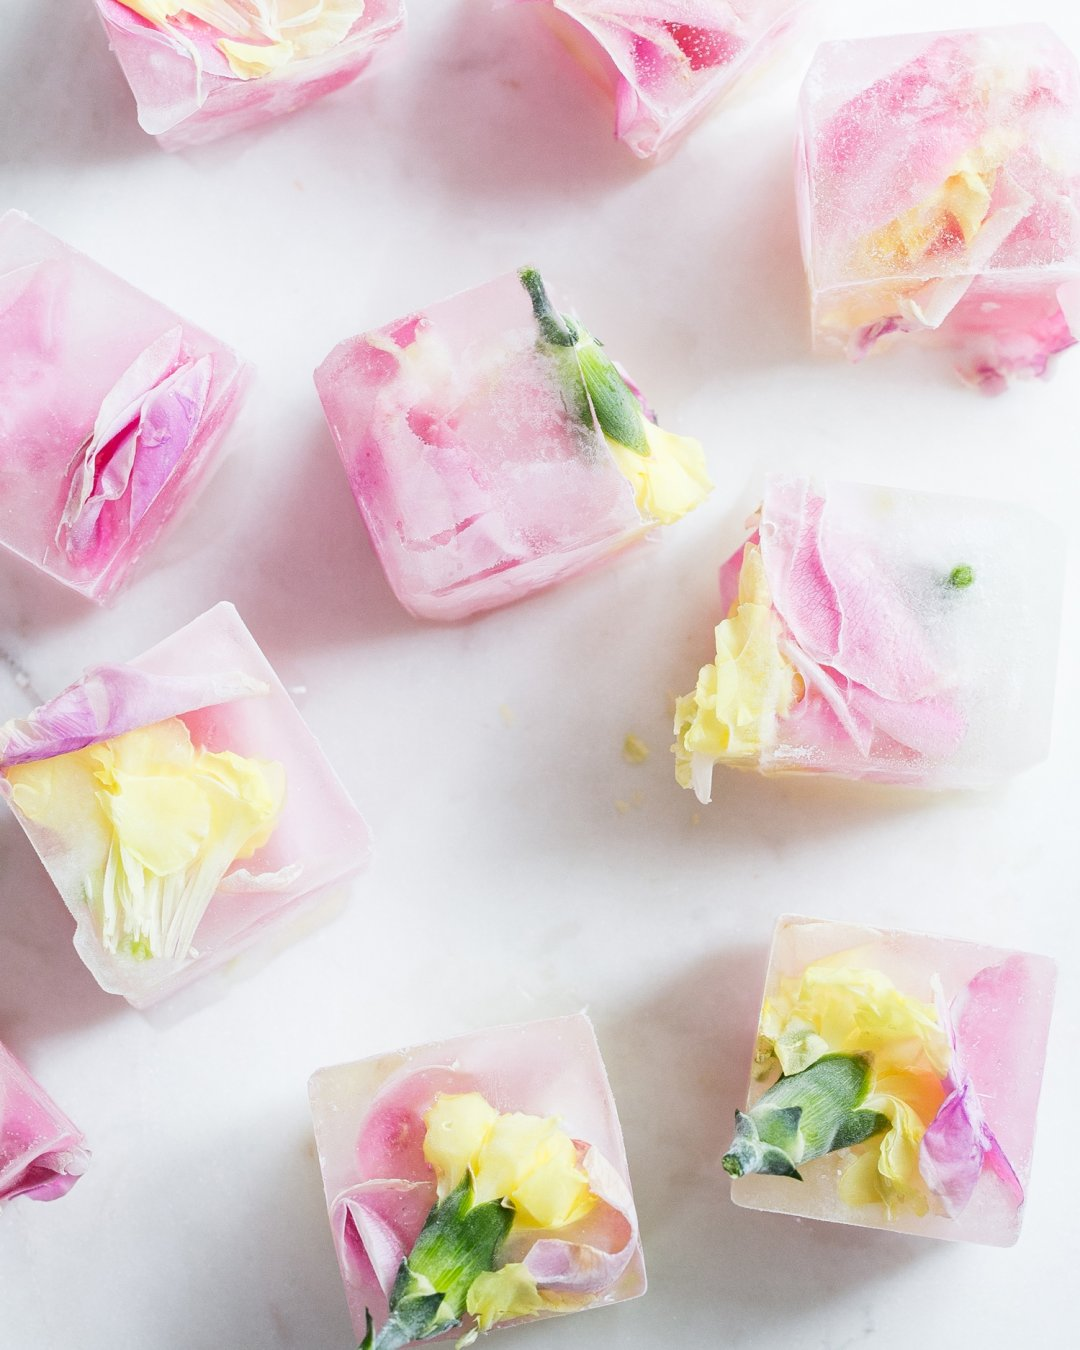 Pink flowers frozen into small ice cubes